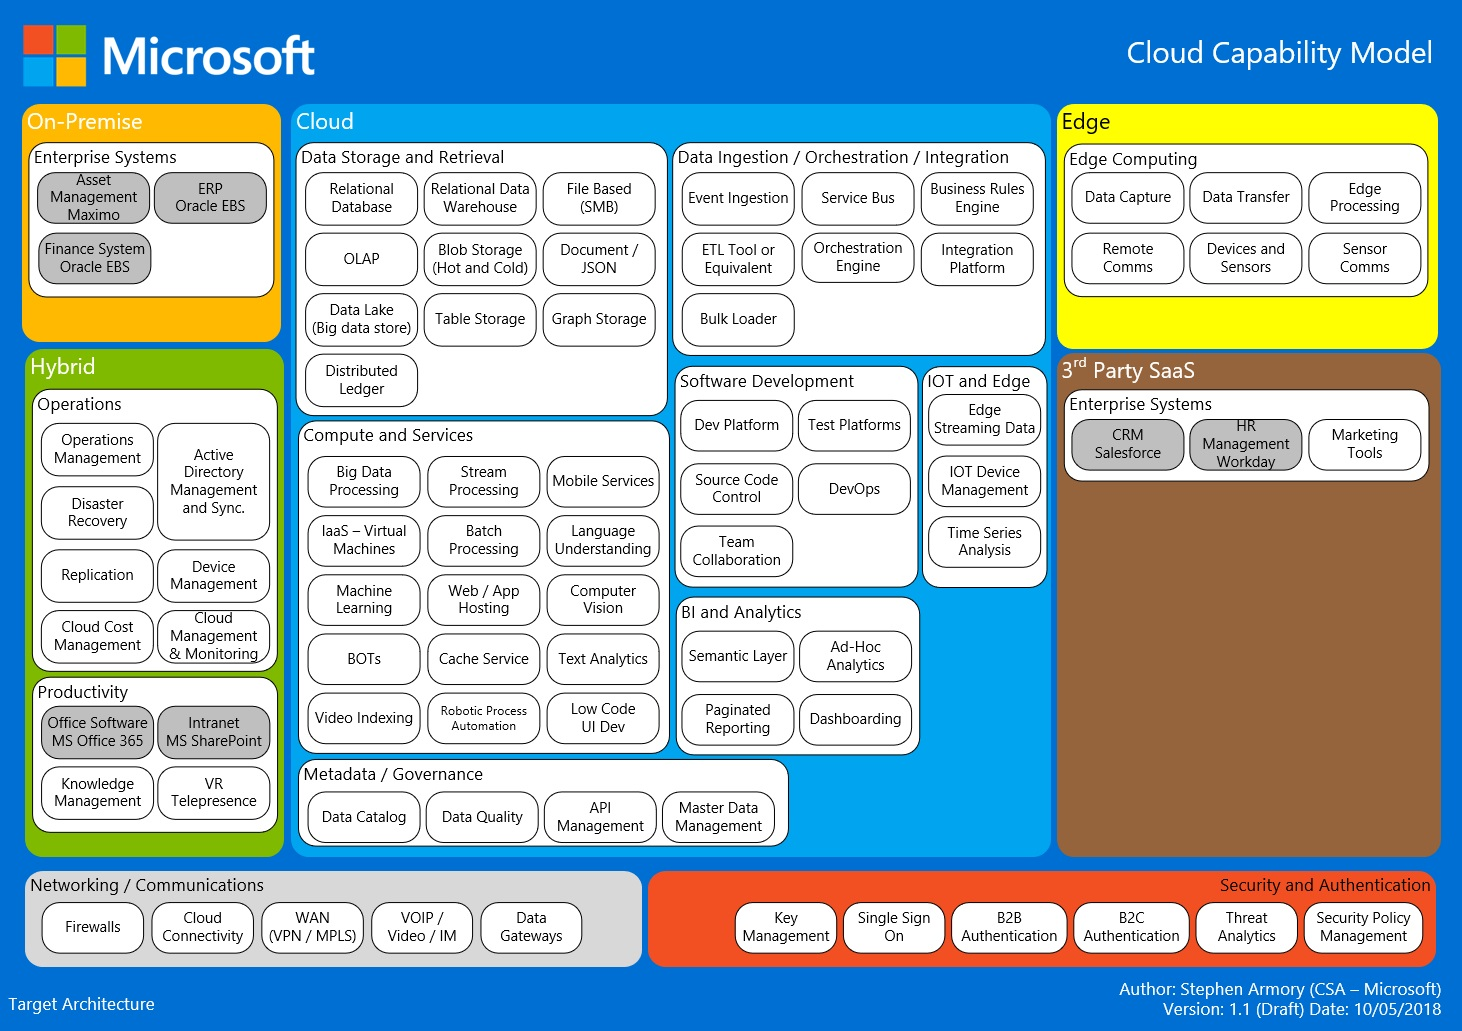 Developing a Cloud Capability Model - Microsoft Industry